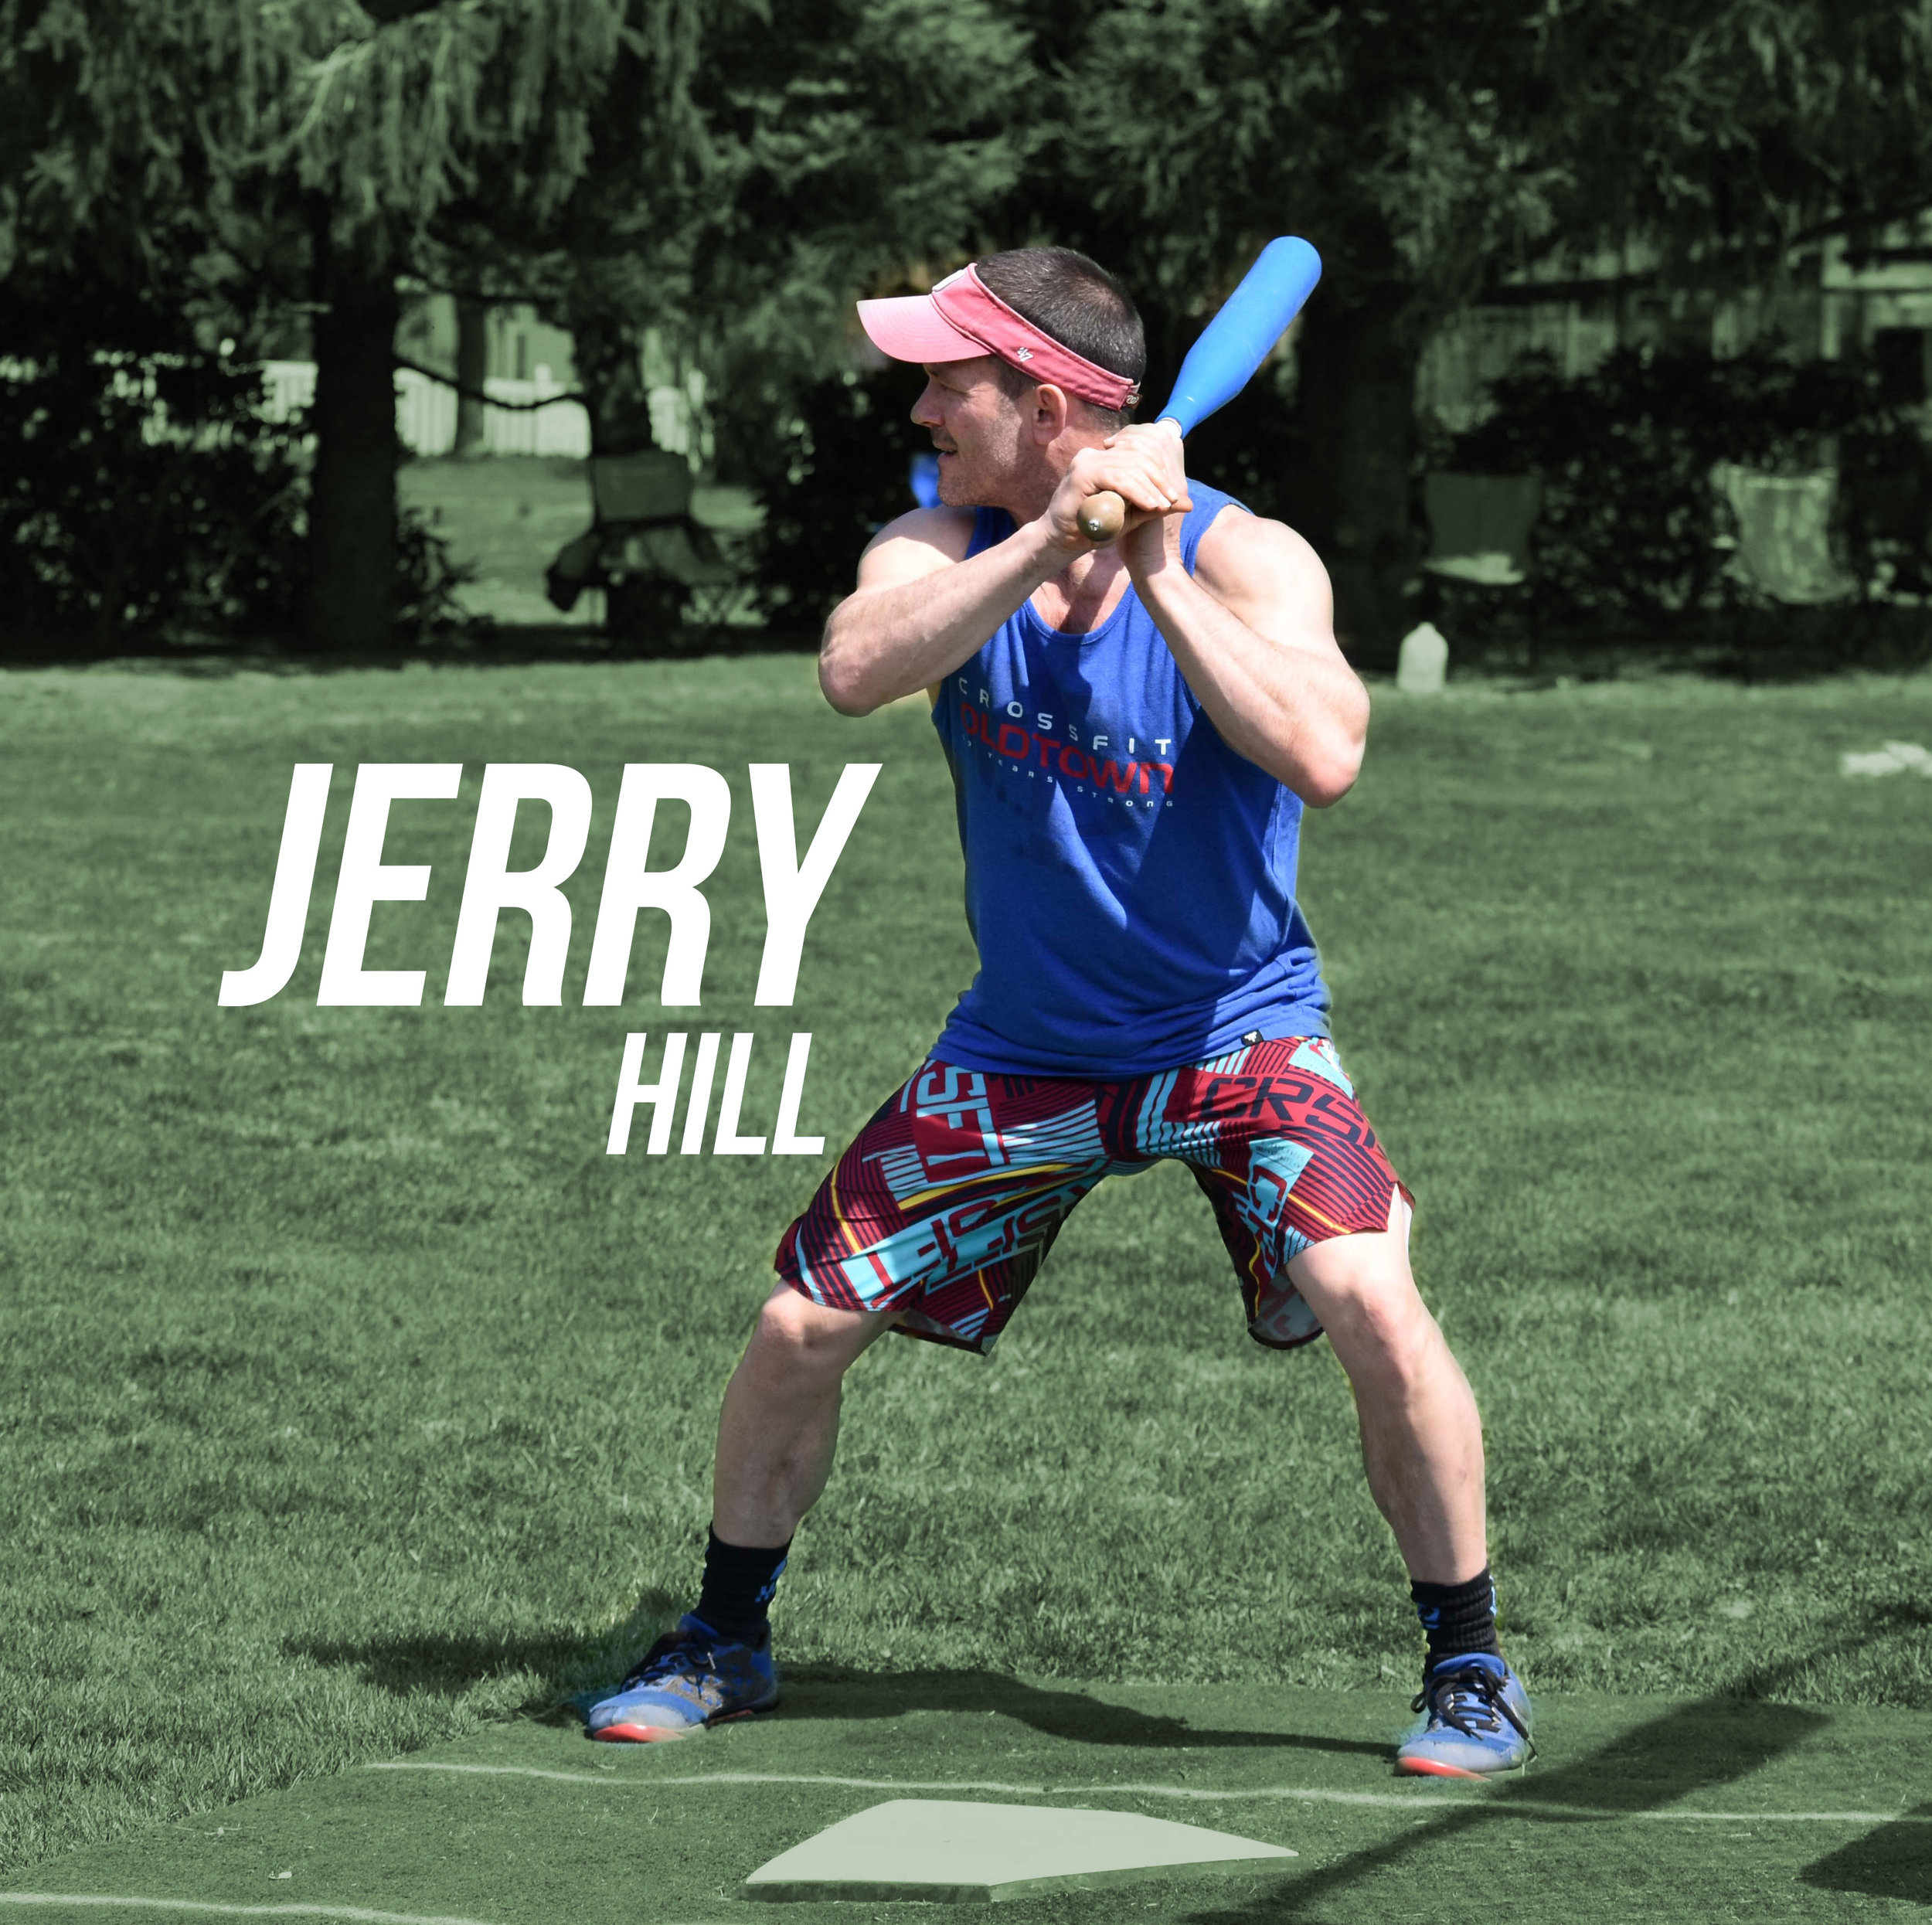 Jerry-Hill-BB-hue.jpg